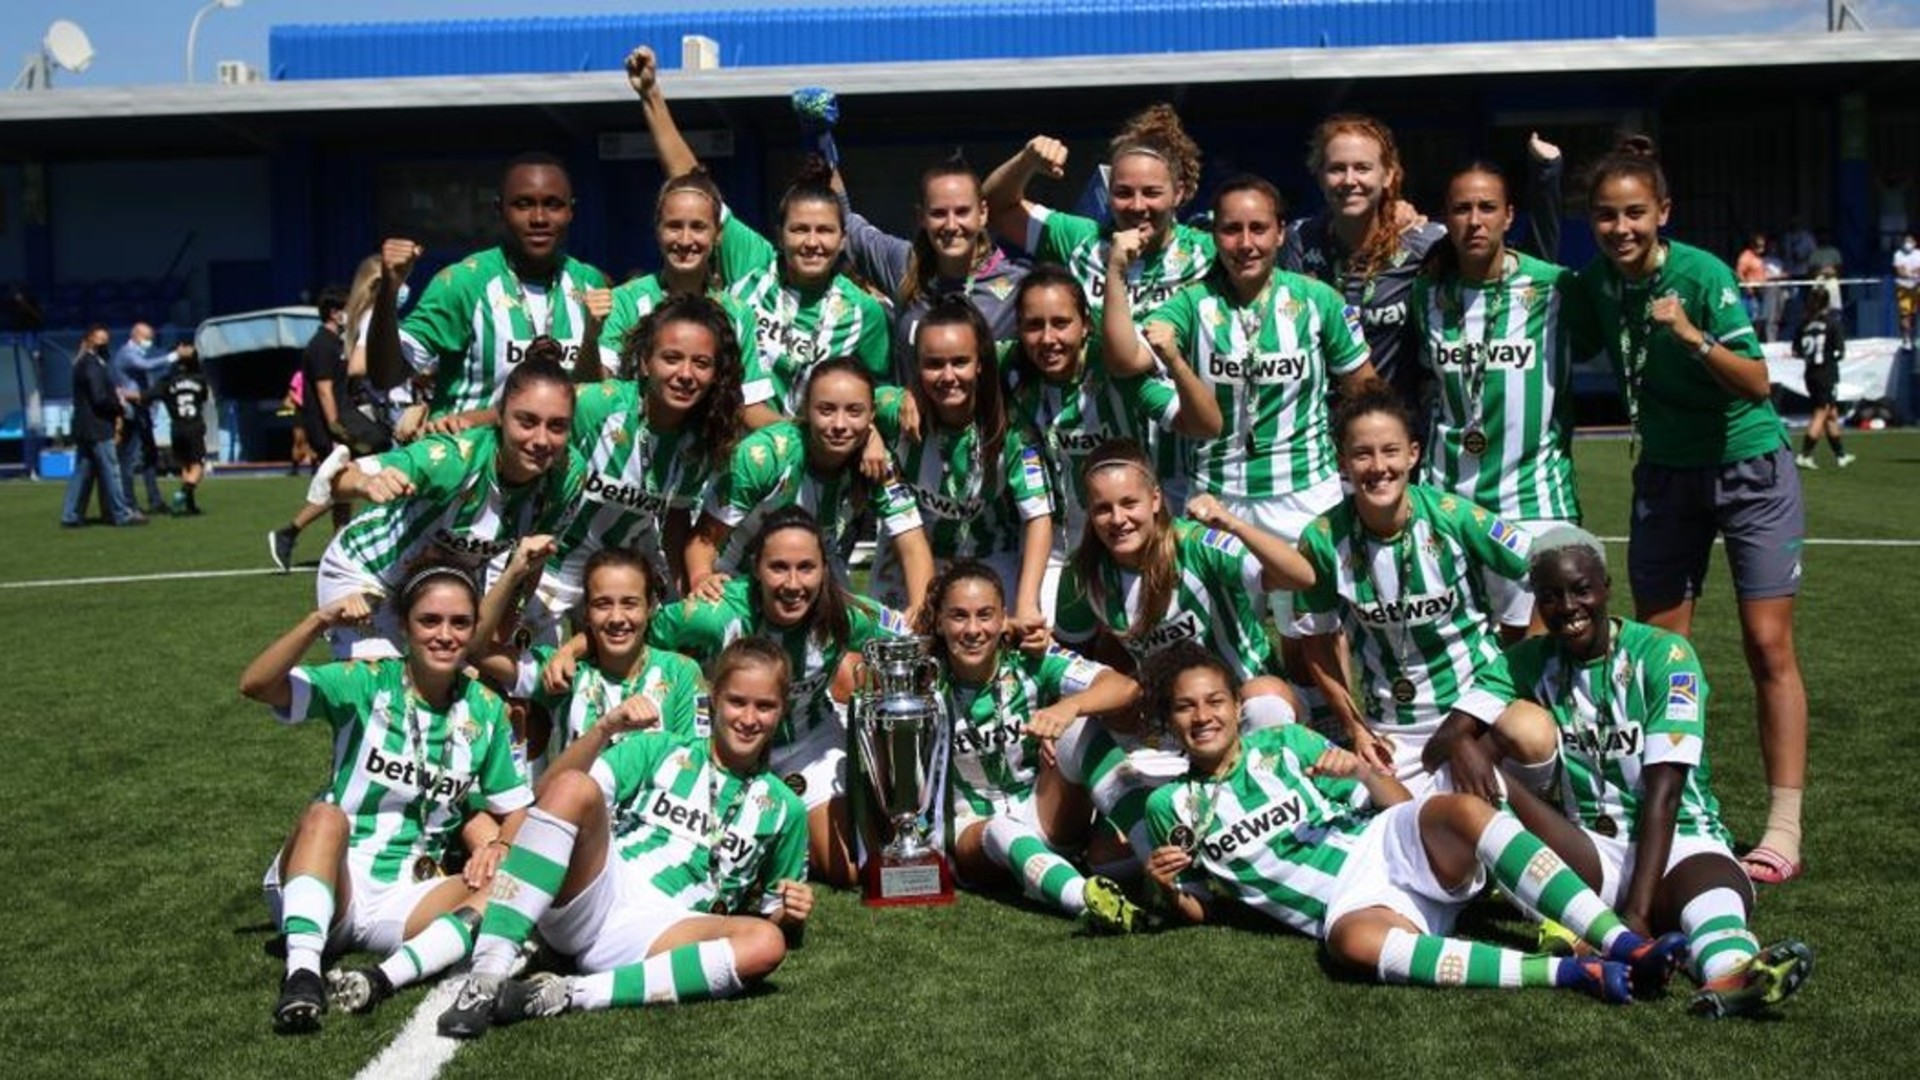 Abam and Chuigoue lift Andalusian Women's Cup with Real Betis